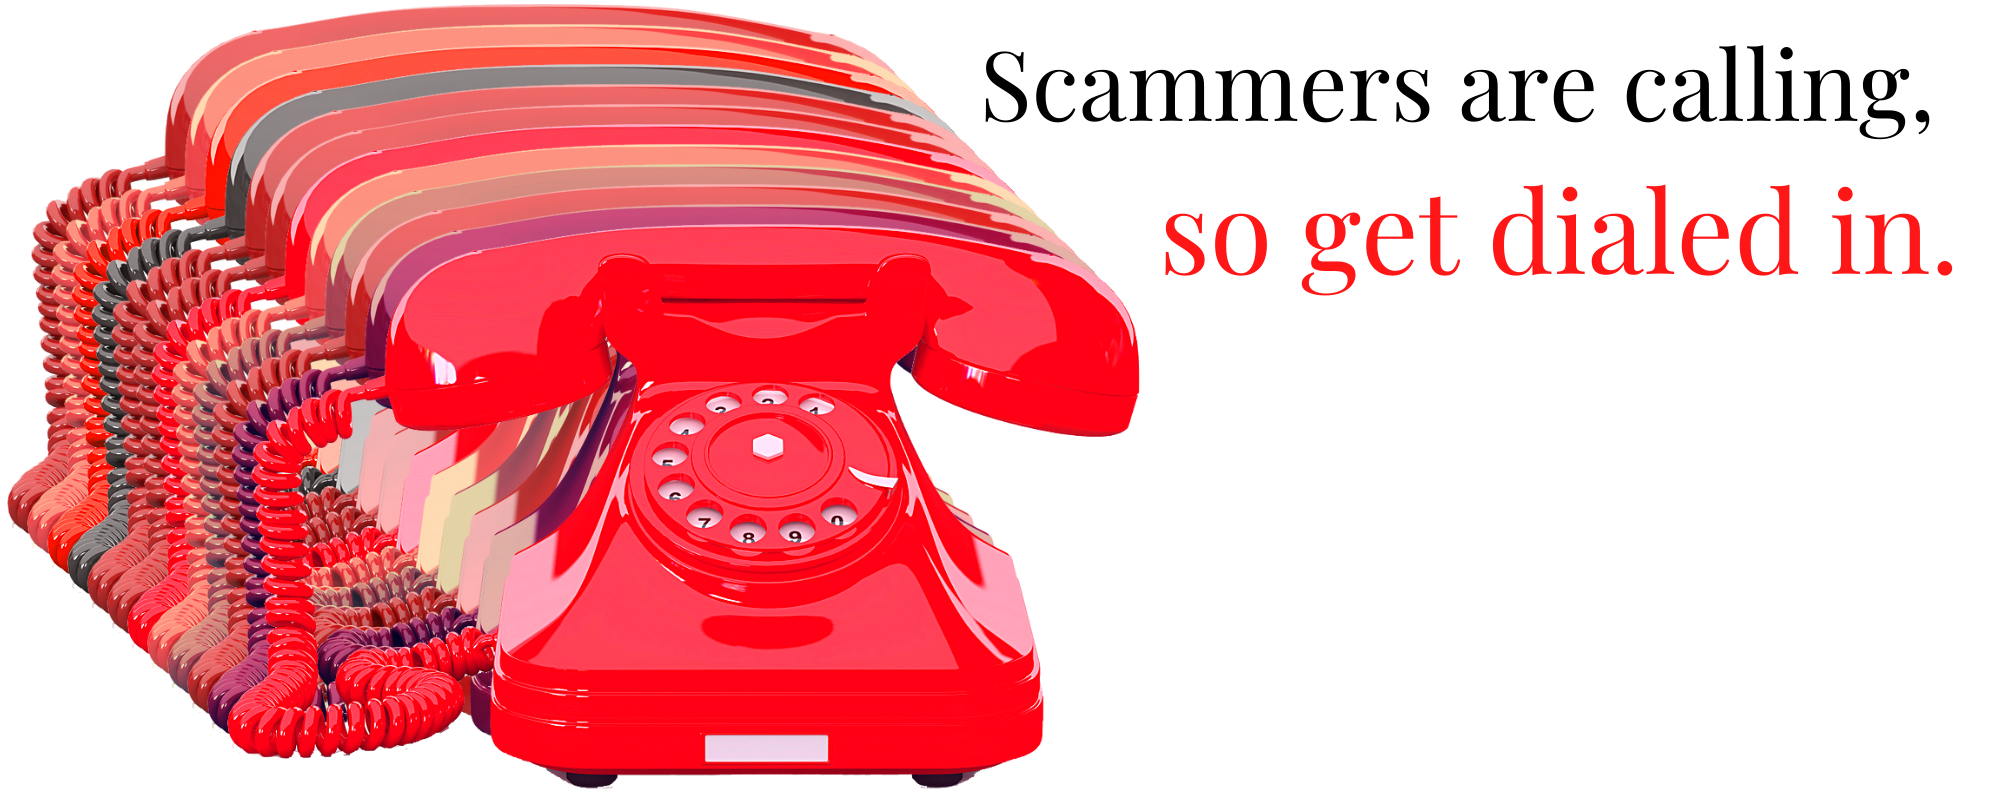 """Image of an old-fashioned phone with the text """"Scammers are calling, so get dialed in."""""""